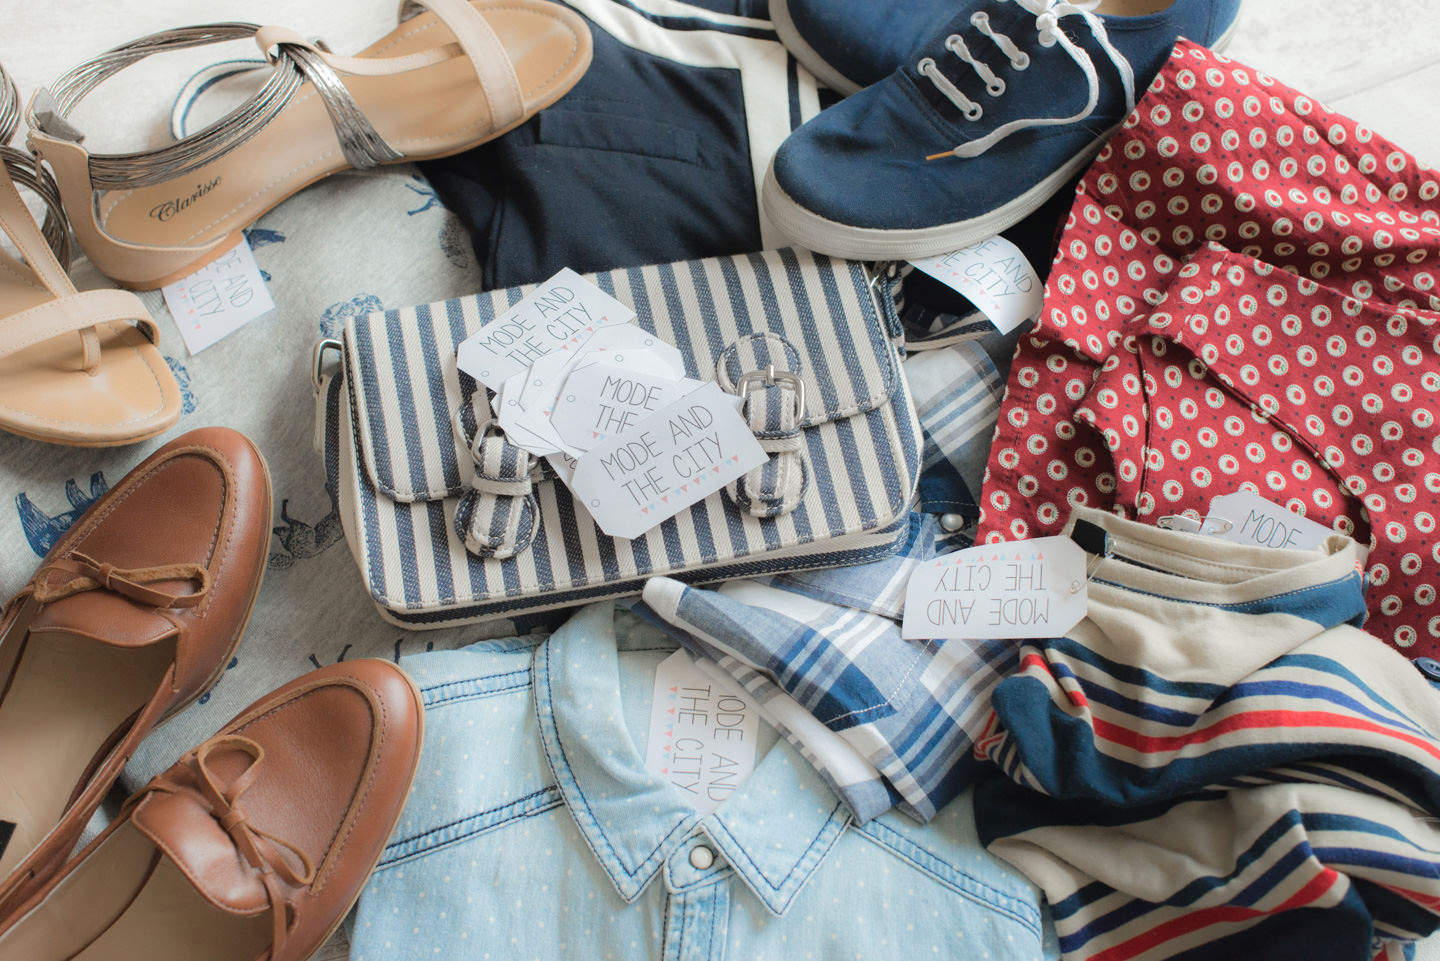 Blog-Mode-And-The-City-Lifestyle-Les-Cinq-Petites-Choses-126-vide-dressing-blogueuses